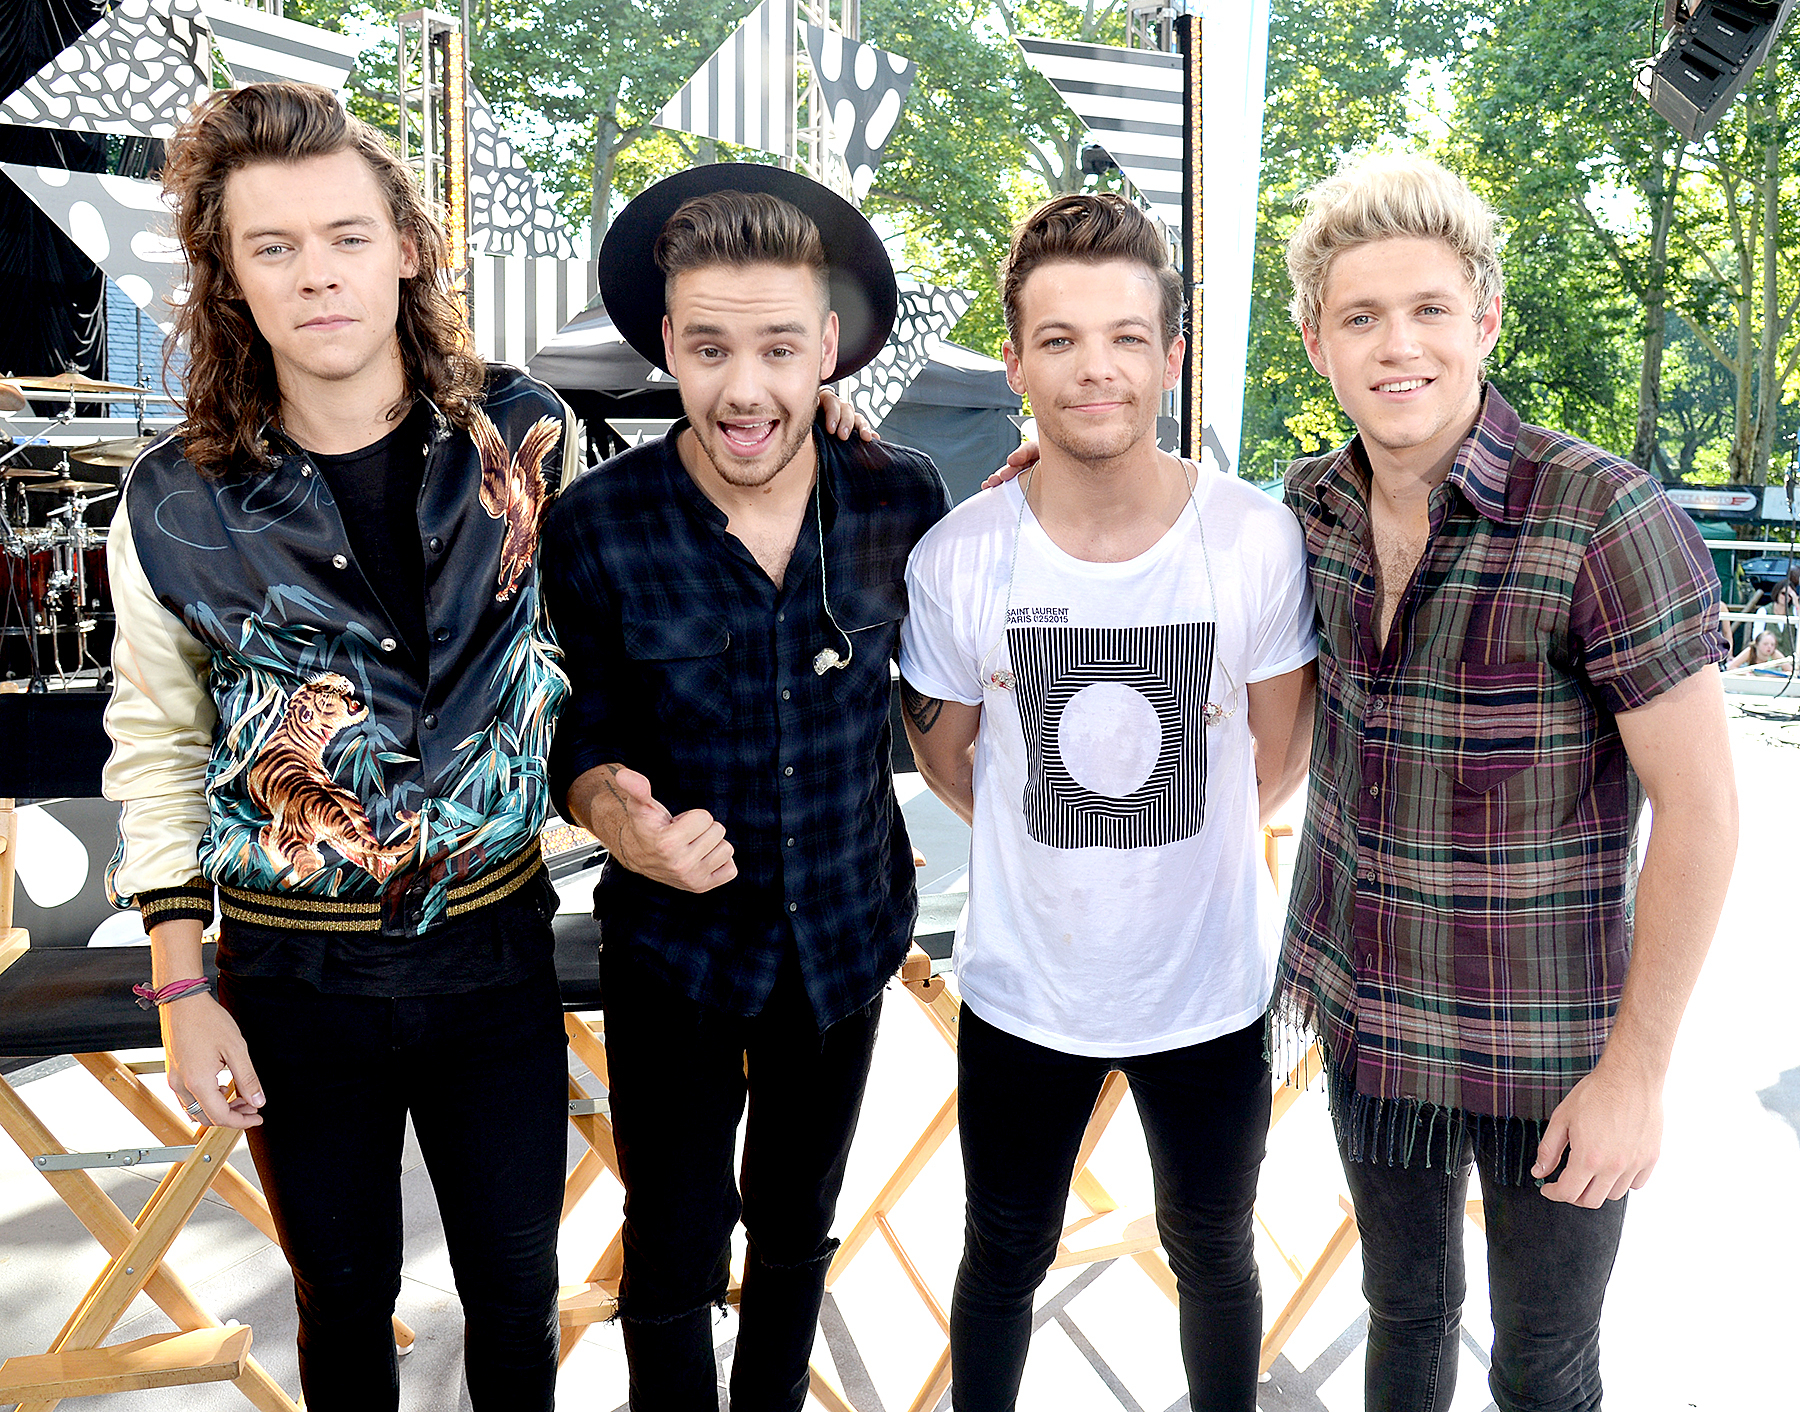 Harry Styles, Liam Payne, Louis Tomlinson and Niall Horan of One Direction pose onstage during ABC's